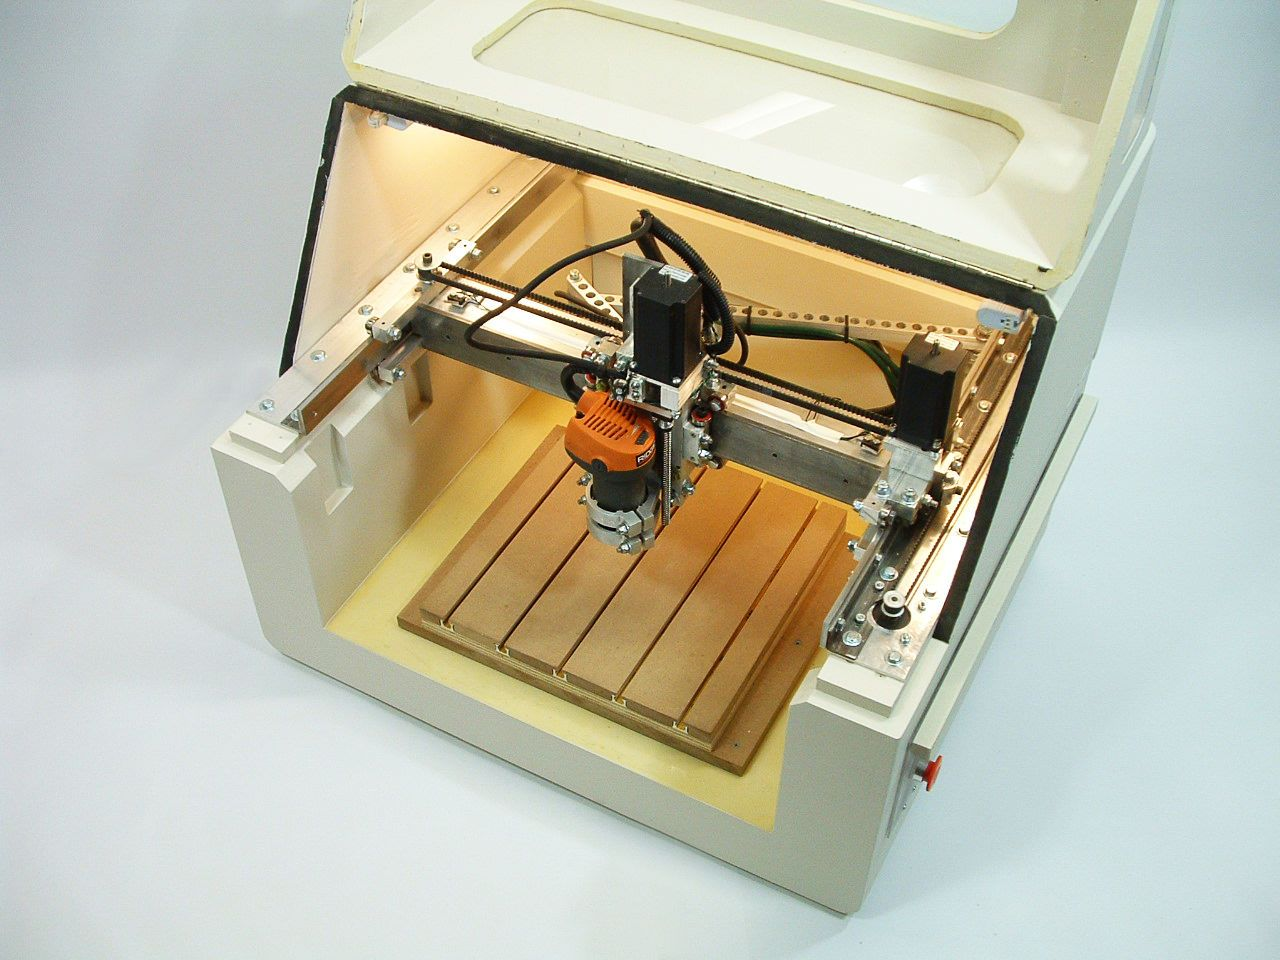 PLANS to build CNC 3 axis router table, milling machine